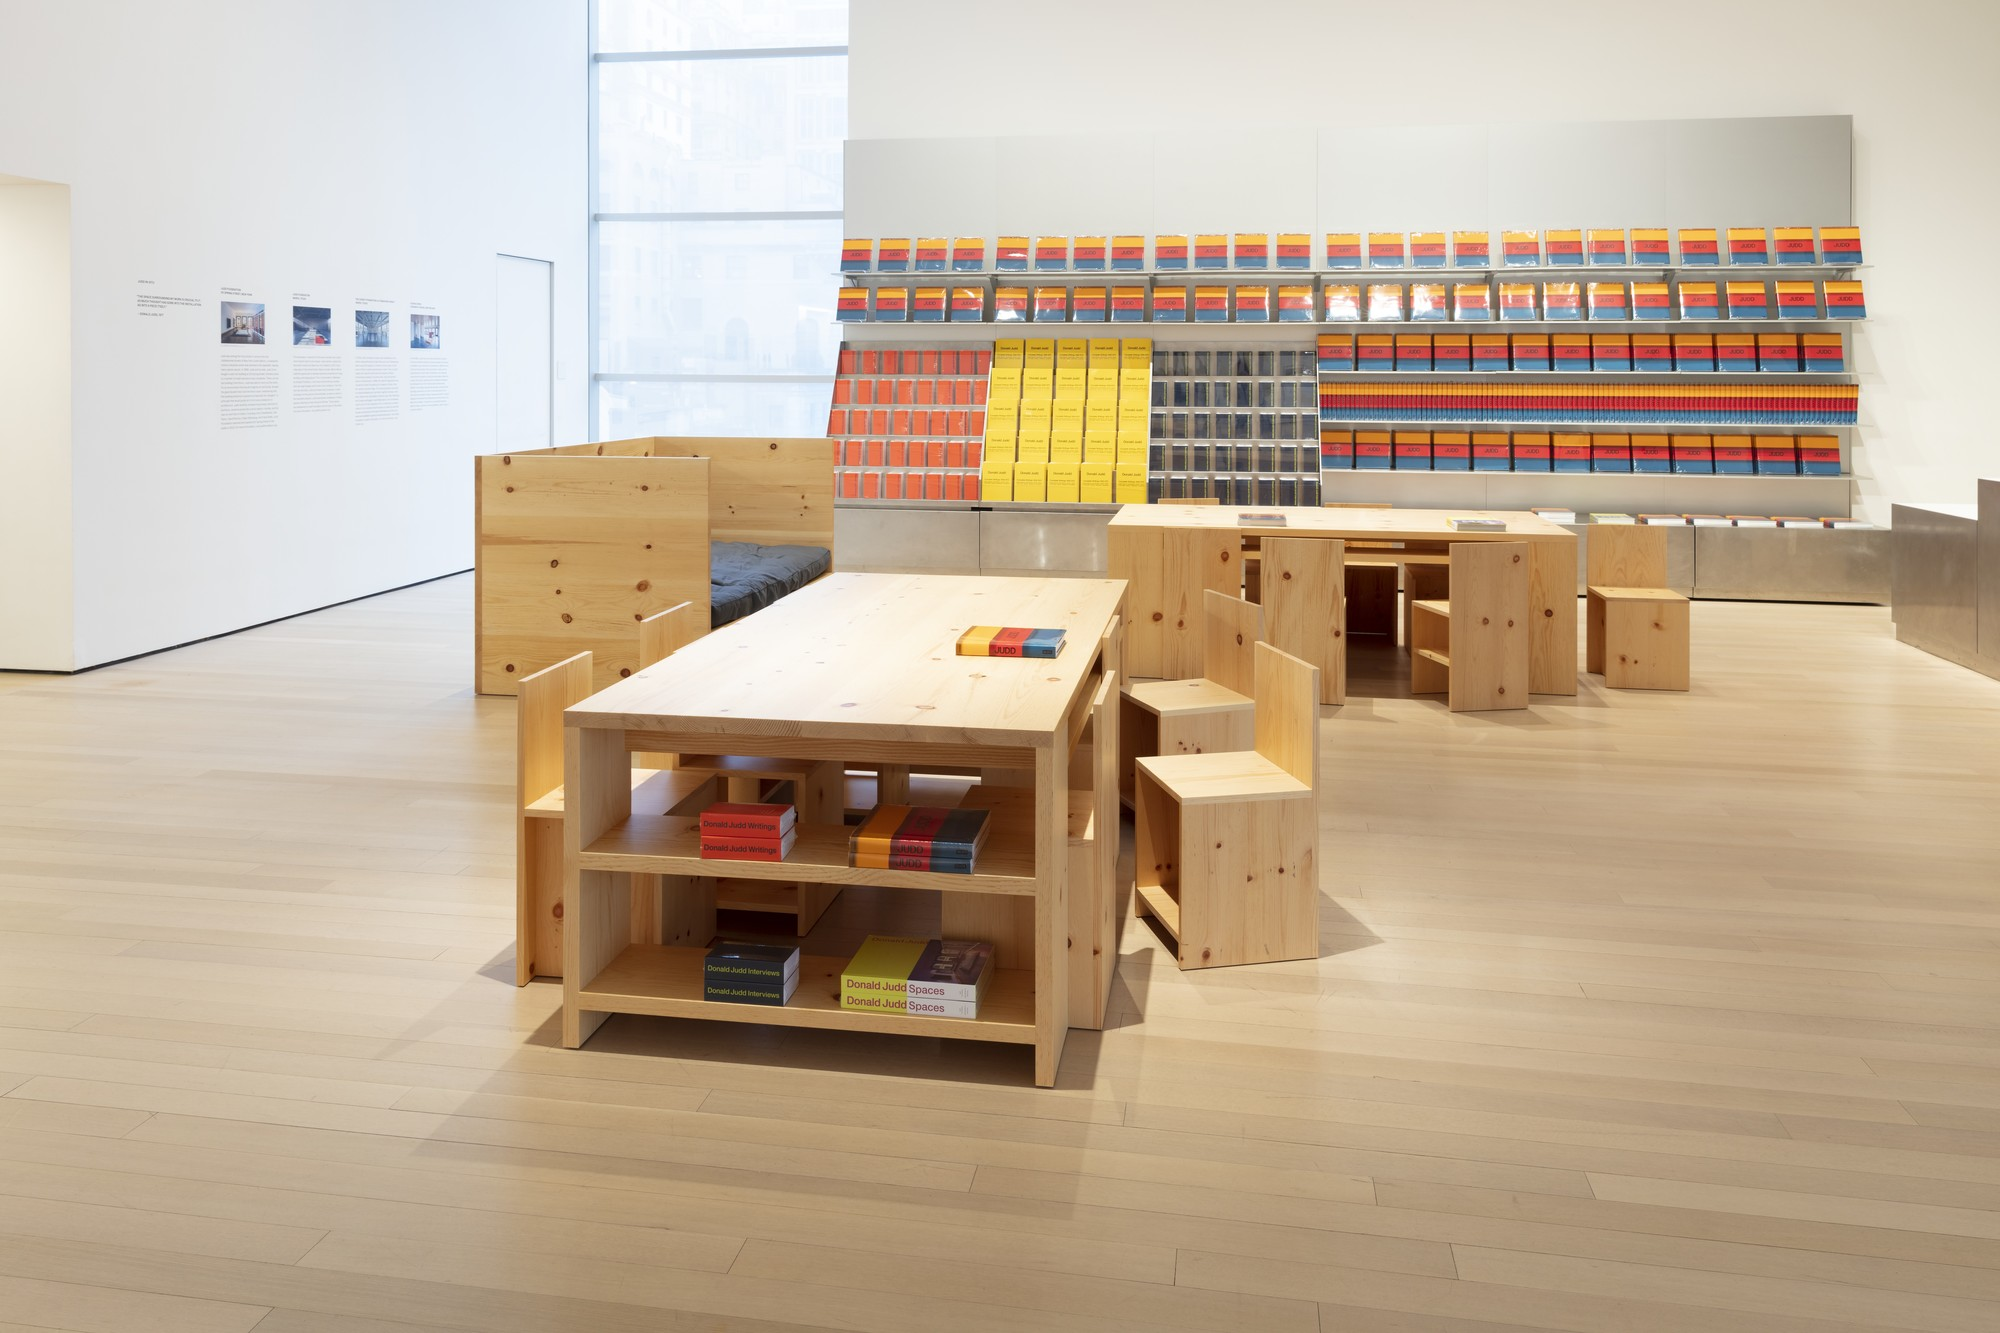 Installation view of the exhibition Judd (March 1st, 2020 — July 11th, 2020) | MoMA